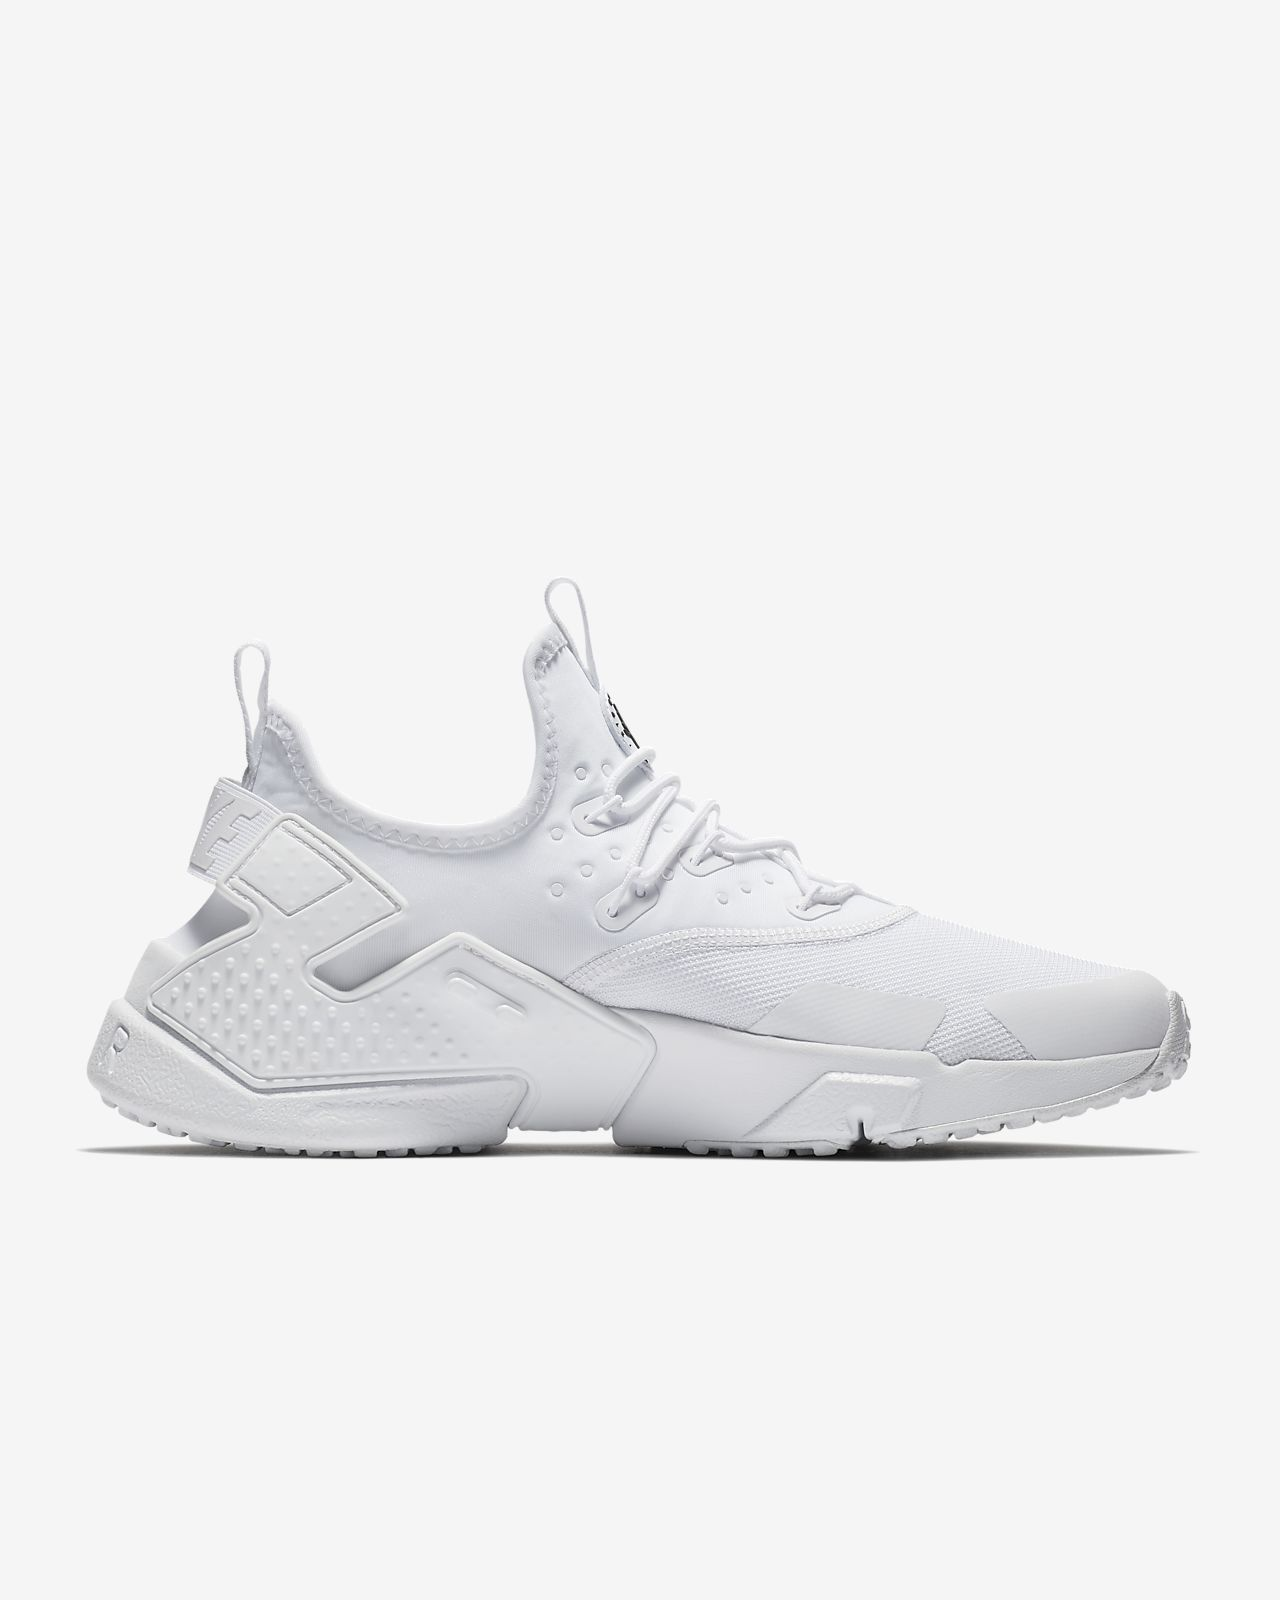 official photos 93f09 eaf66 ... Nike Air Huarache Drift Men s Shoe